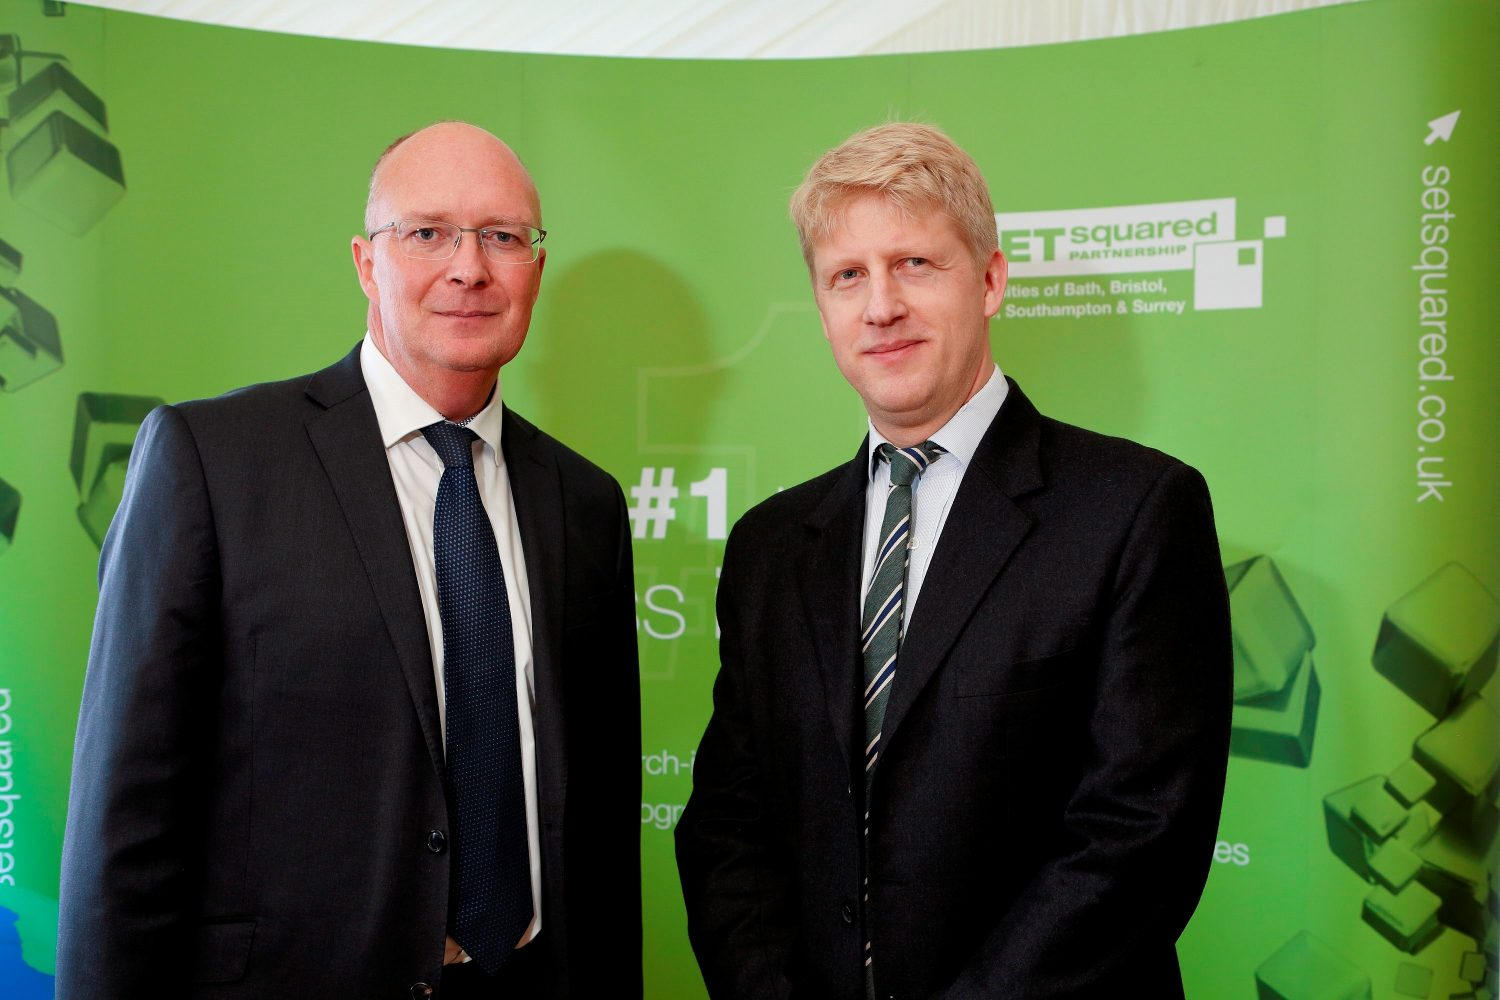 SETsquared featured in significant new report launched by Jo Johnson